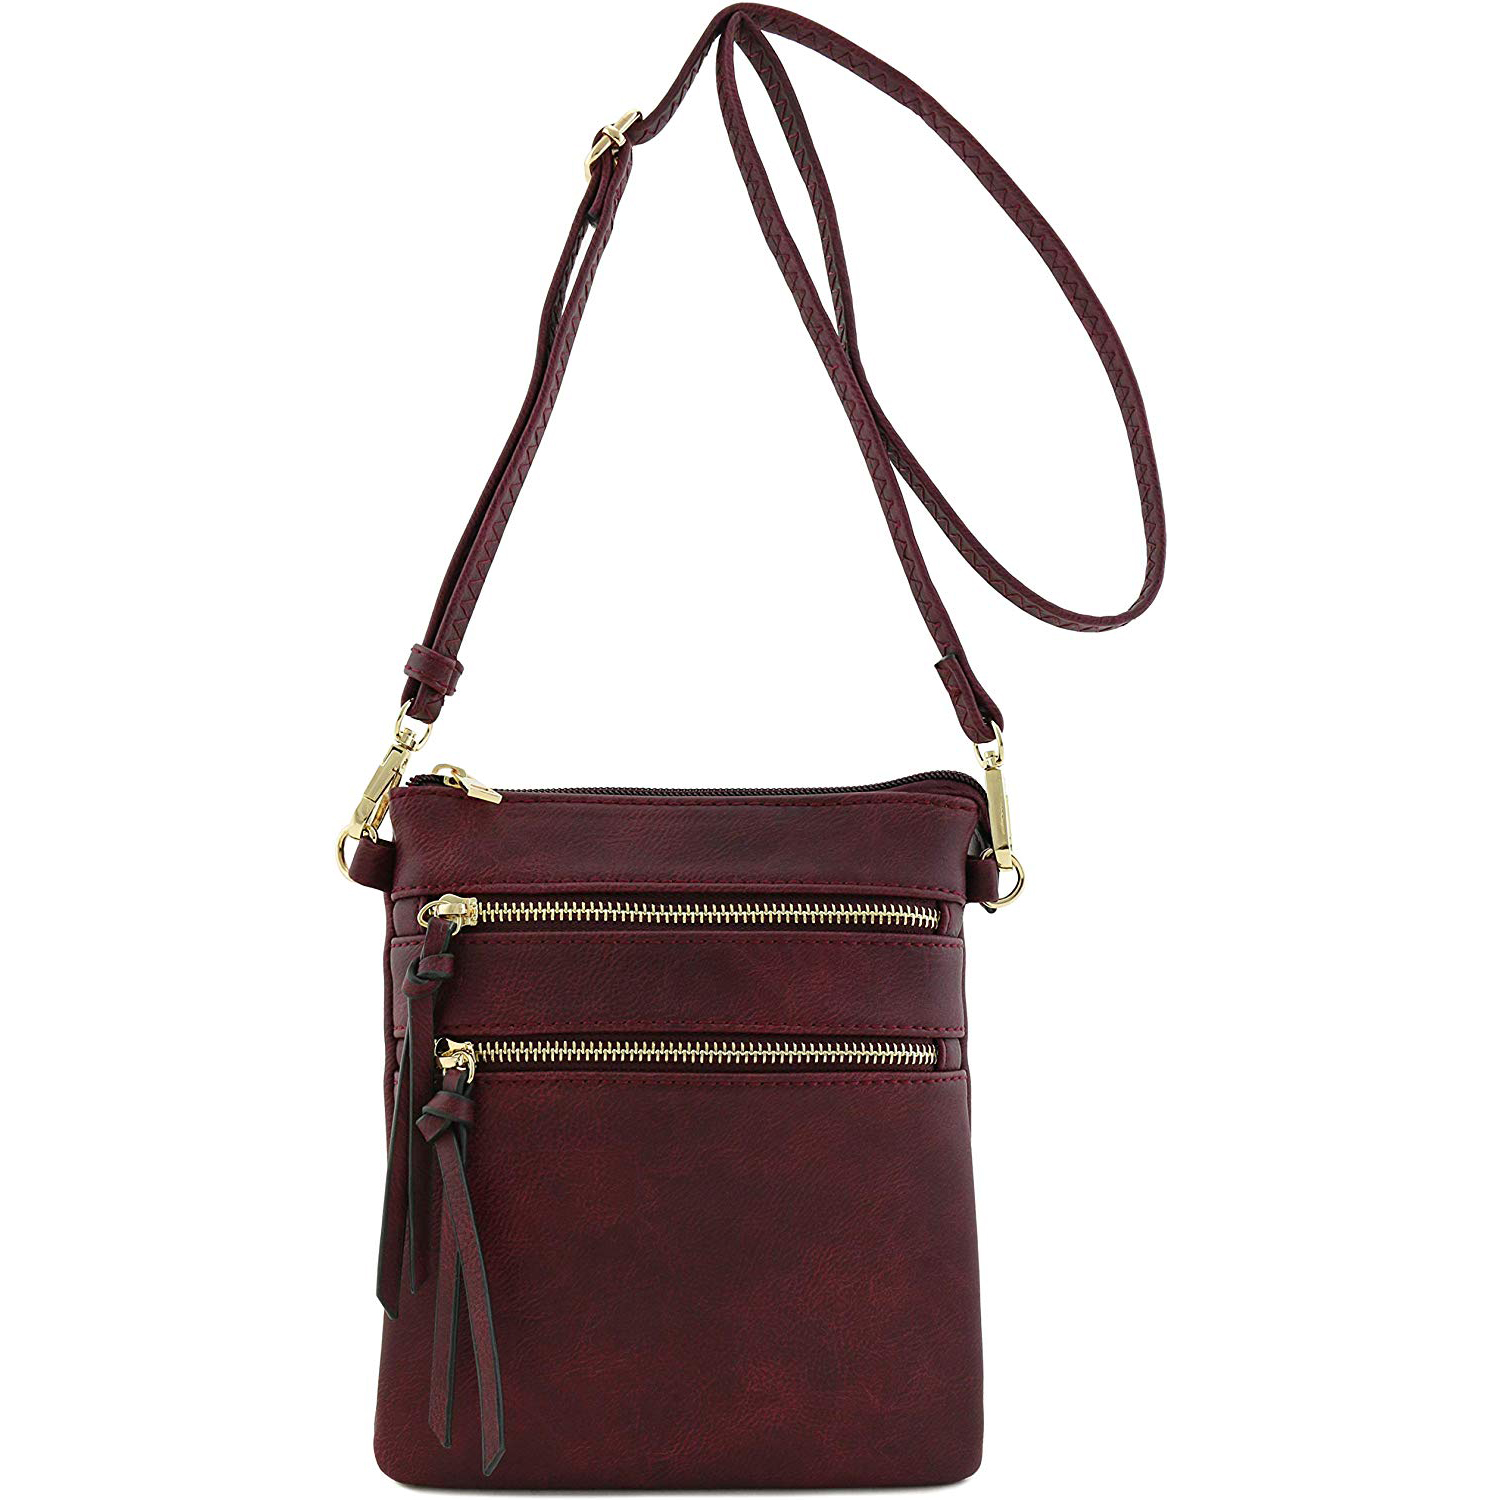 Amazon Shoppers Call This Crossbody Purse With Pockets a 'Must-Have'